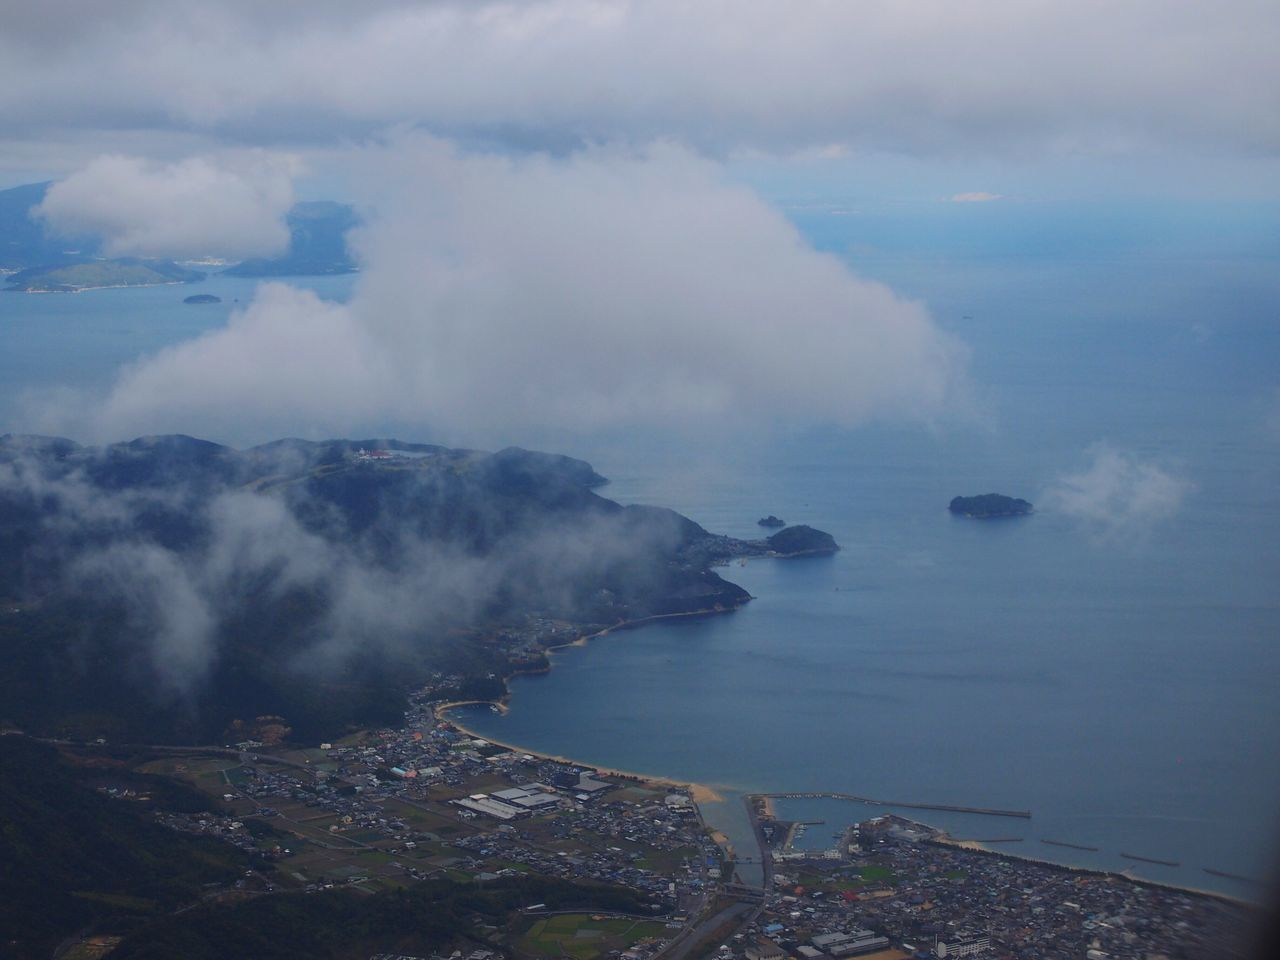 Check This Out Landscape_photography Landscape_Collection From My Point Of View Cityscapes Capture The Moment From An Airplane Window 高松 Hello World A Bird's Eye View